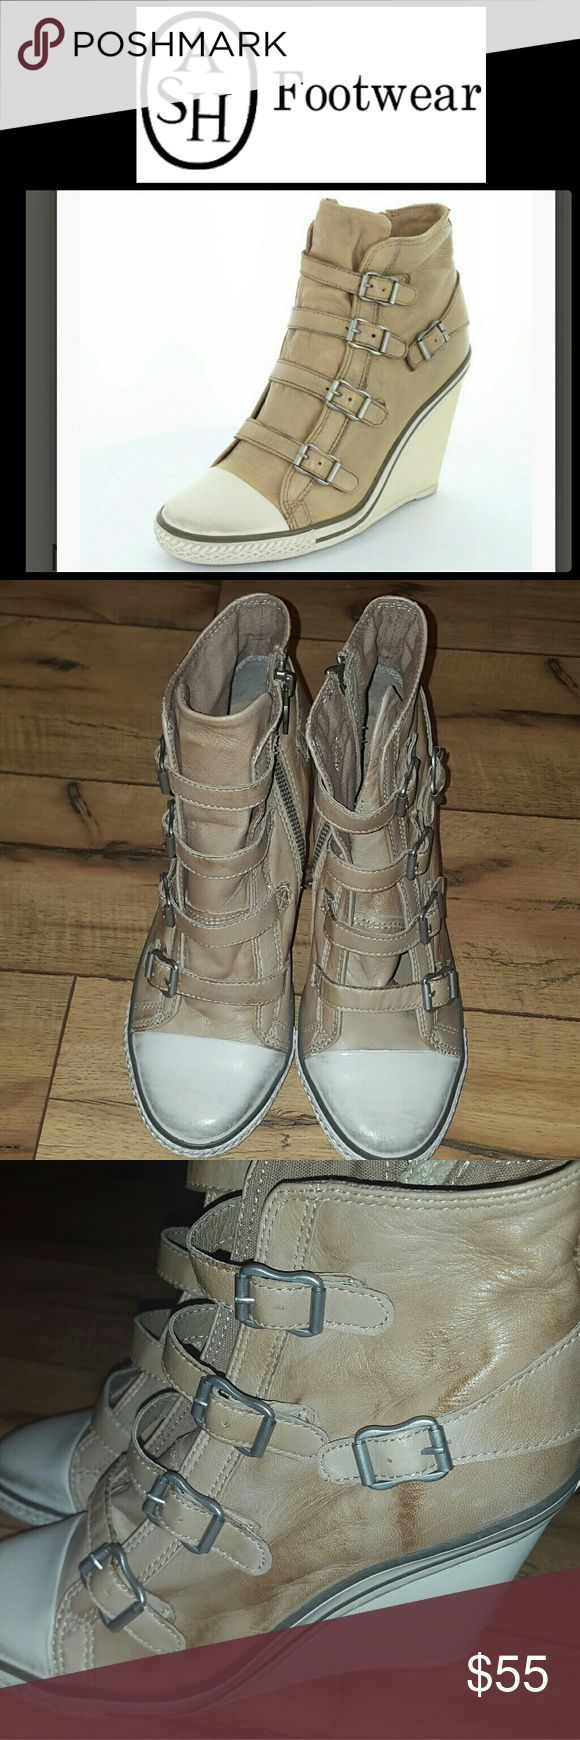 ASH SNEAKERS THELMA WEDGE SZ 38/8 GREAT CONDITION!!! SUPER SOFT LEATHER! PLEASE FEEL FREE TO MAKE AN OFFER!! Ash Shoes Wedges